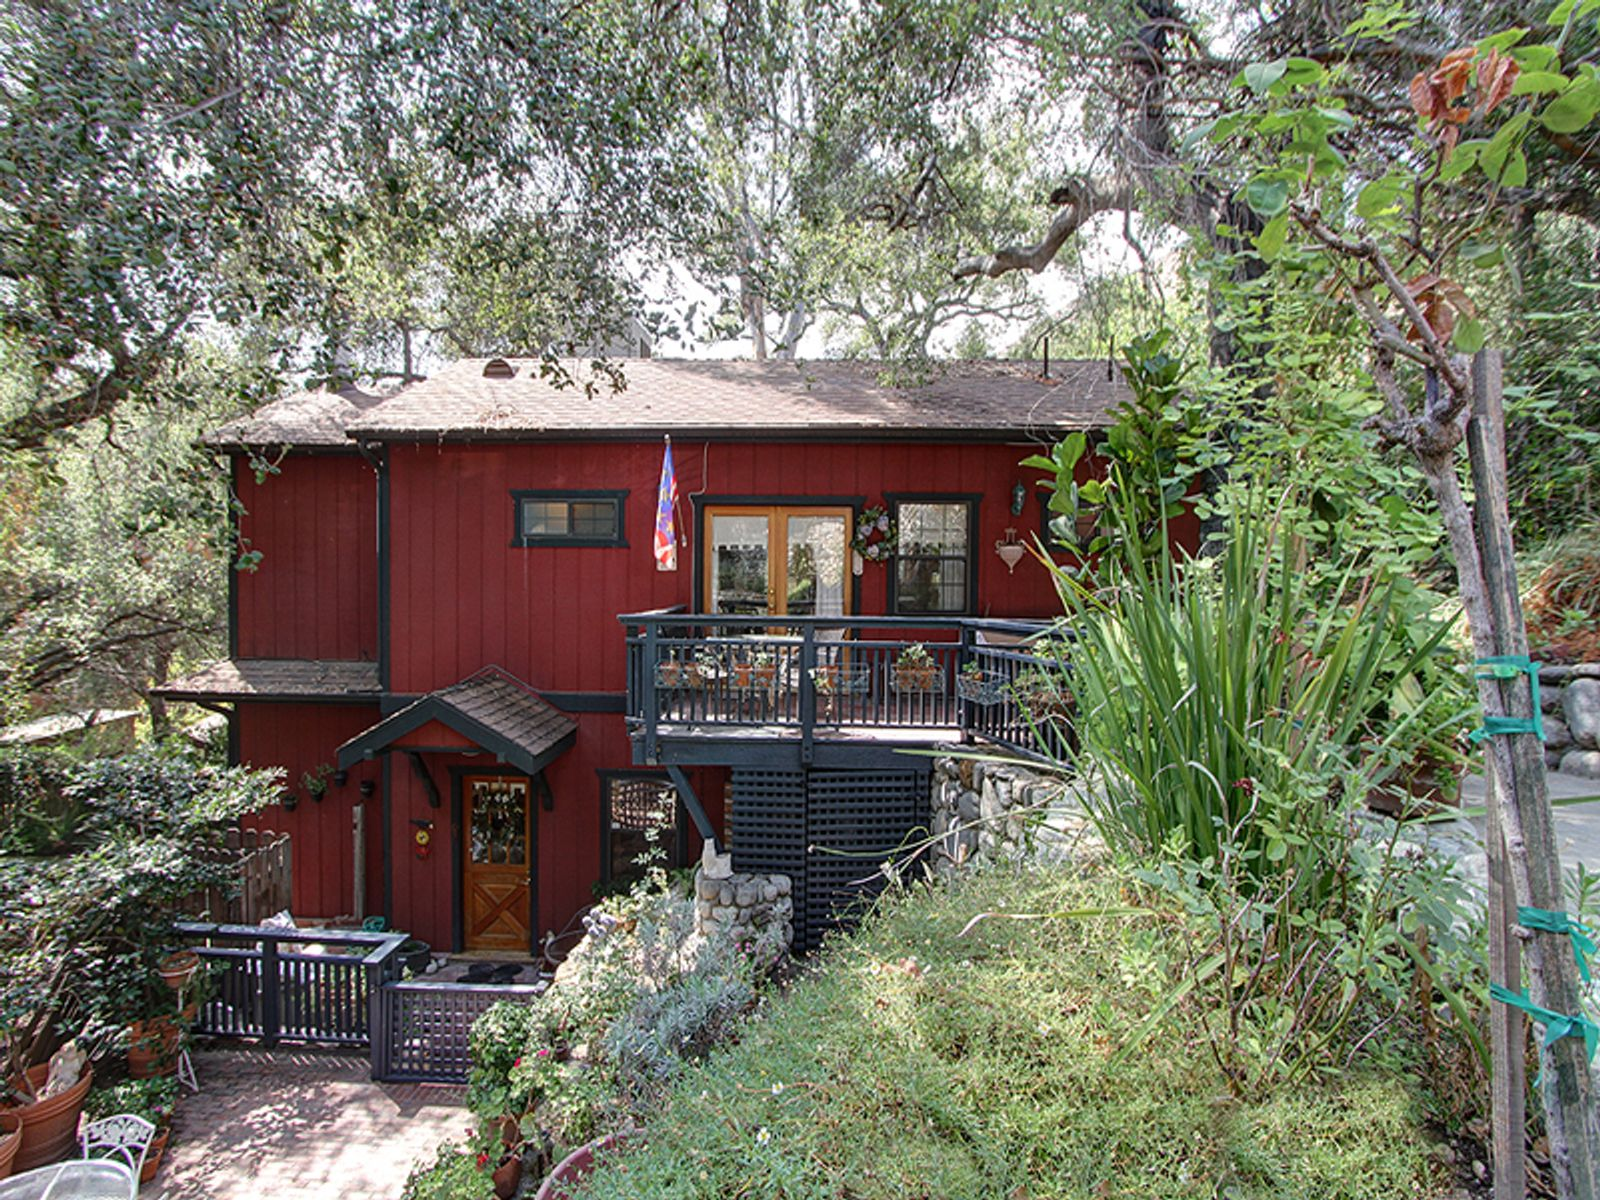 Enchanted Cottage, Sierra Madre CA Single Family Home - Pasadena Real Estate